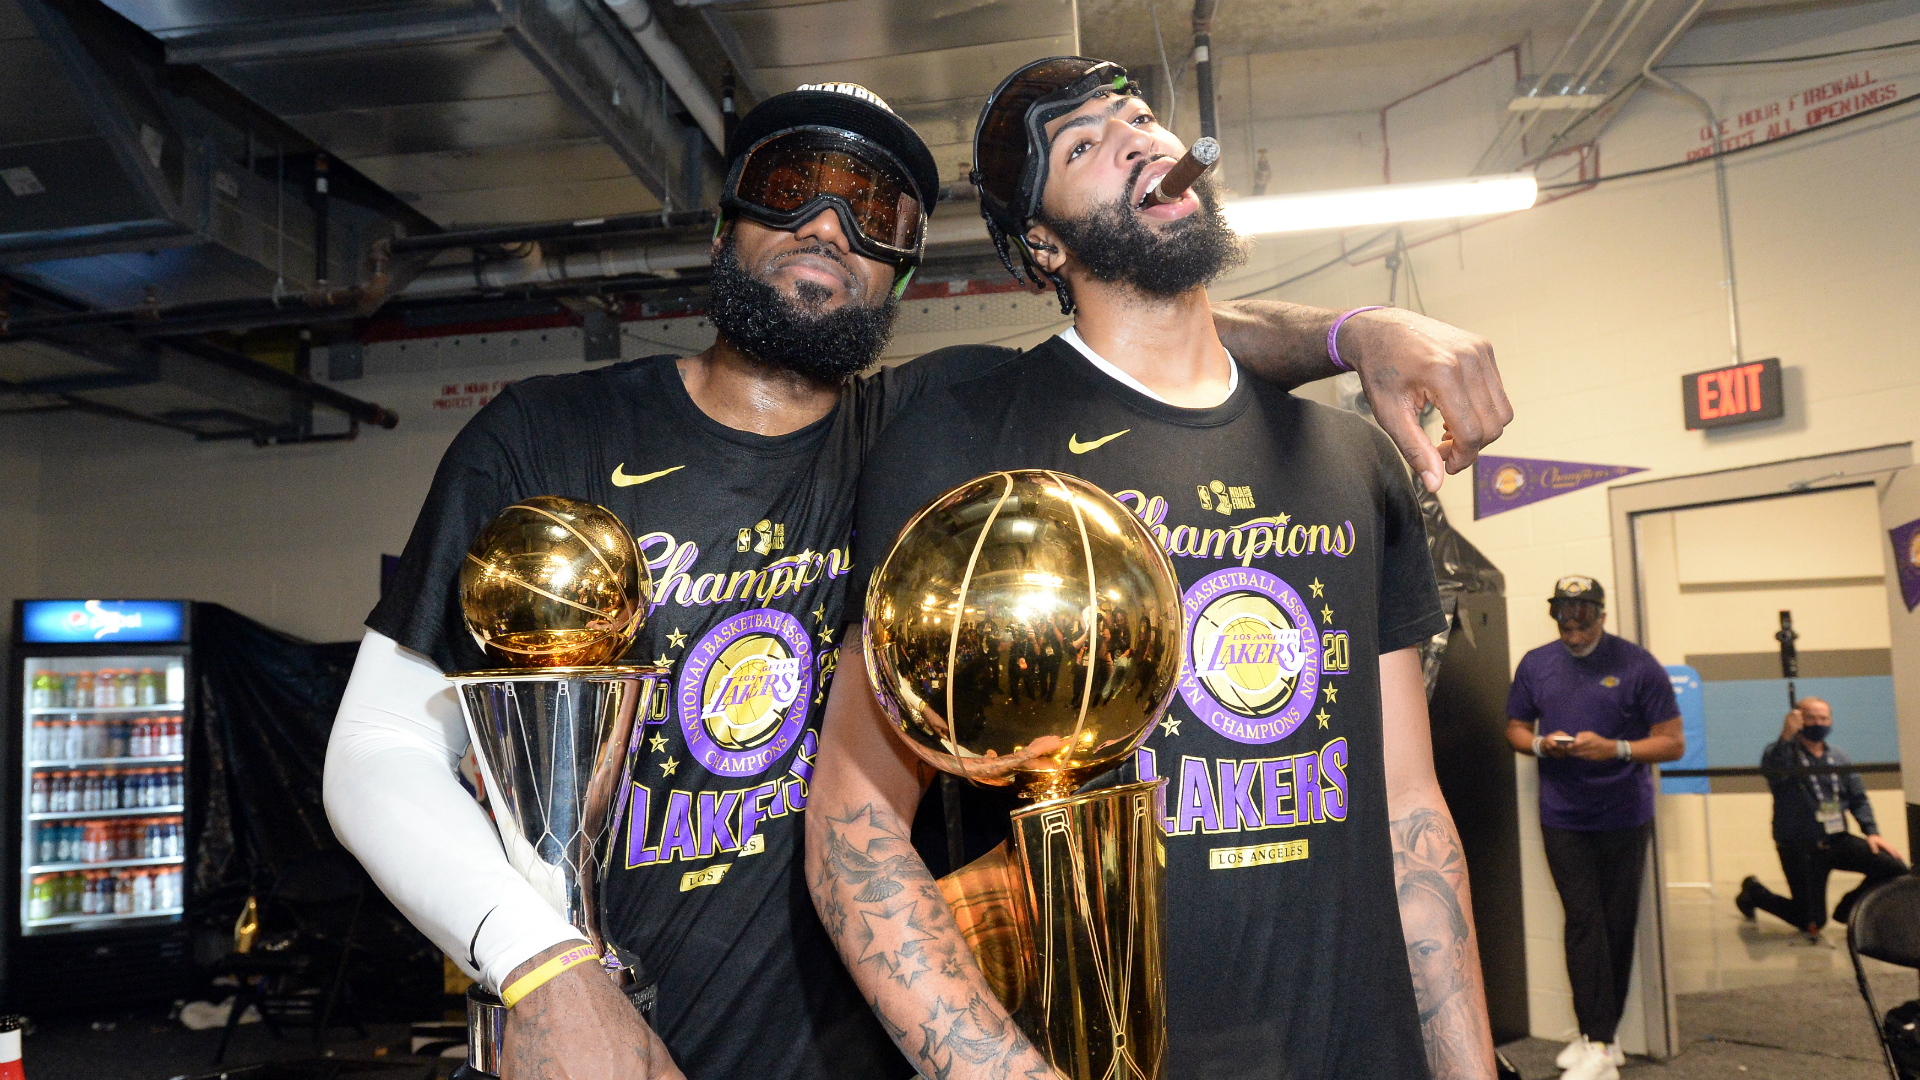 New Davis deal, bench scoring boost – How LeBron's Lakers 'won' the offseason